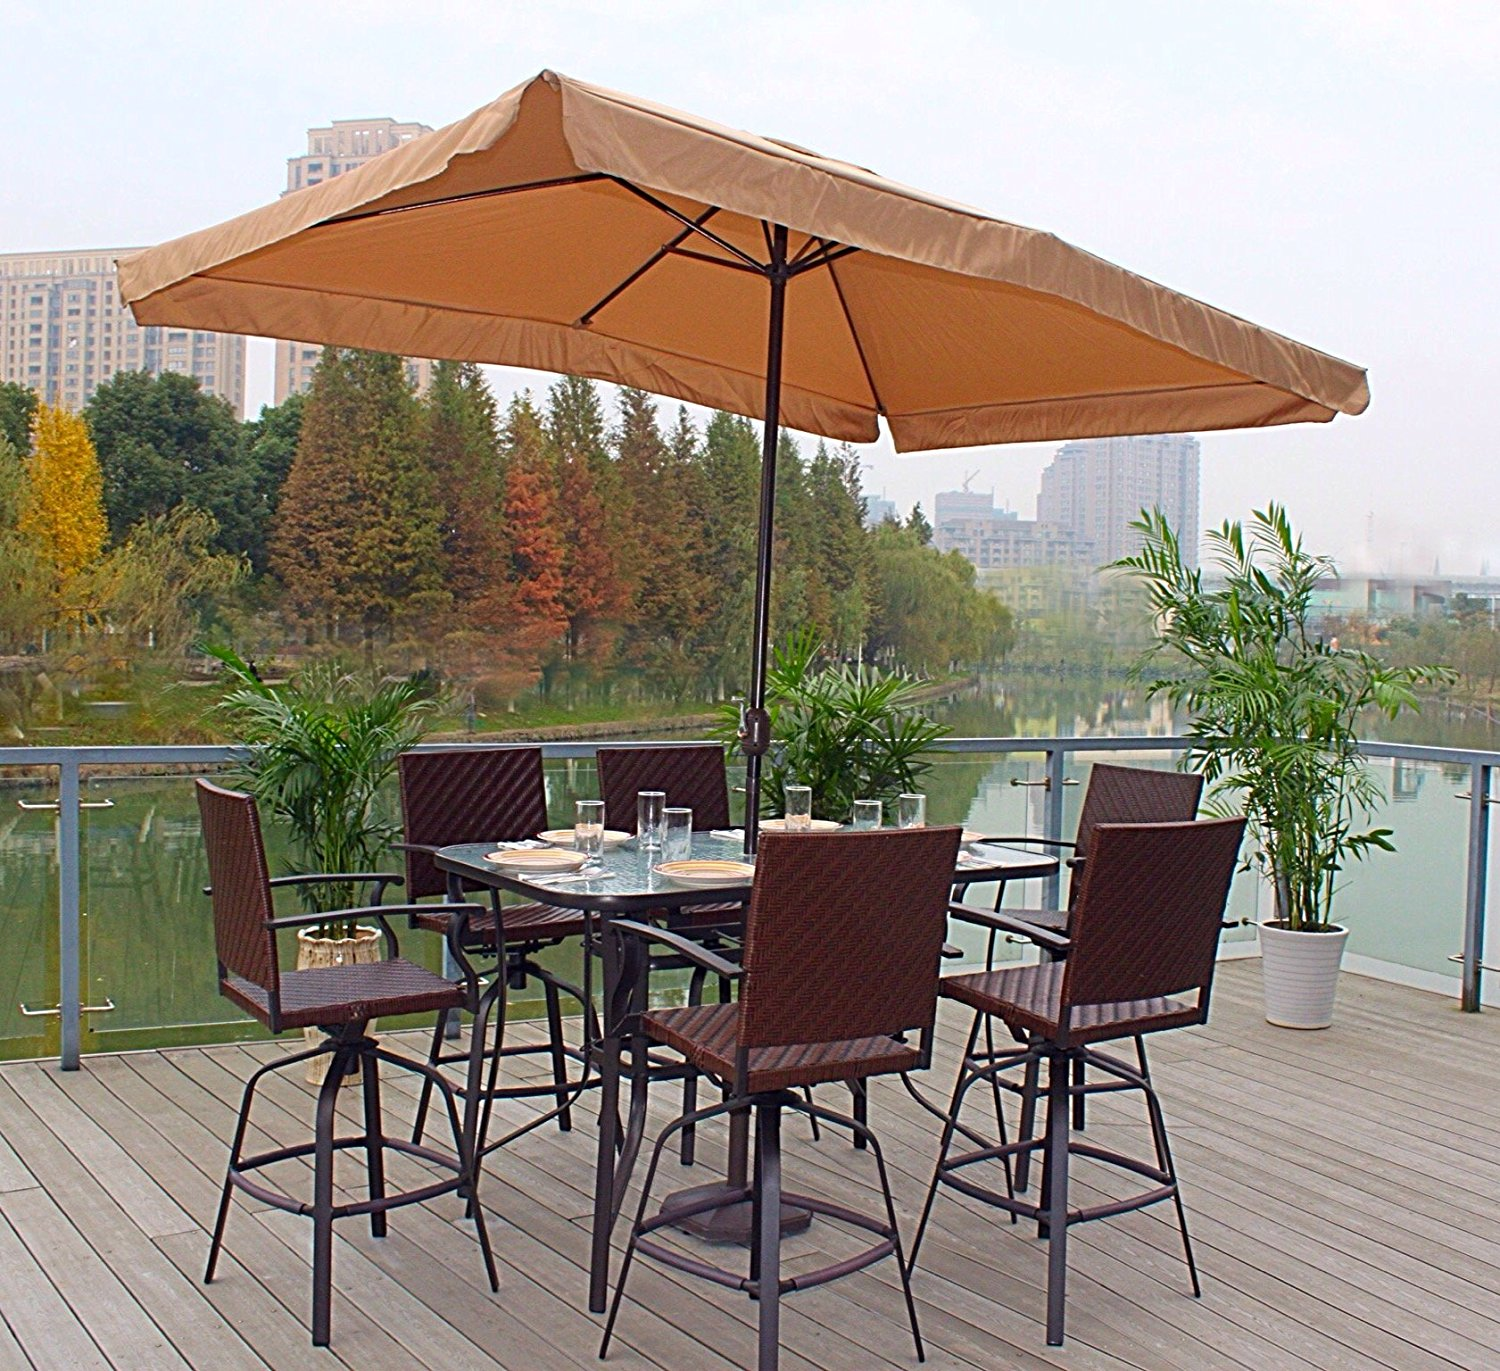 7pc Wicker Swivel  Bar Height Powder-Coated Steel Glass Top Patio Dining Set- Brown With Umbrella (Tan/Java) & Stand